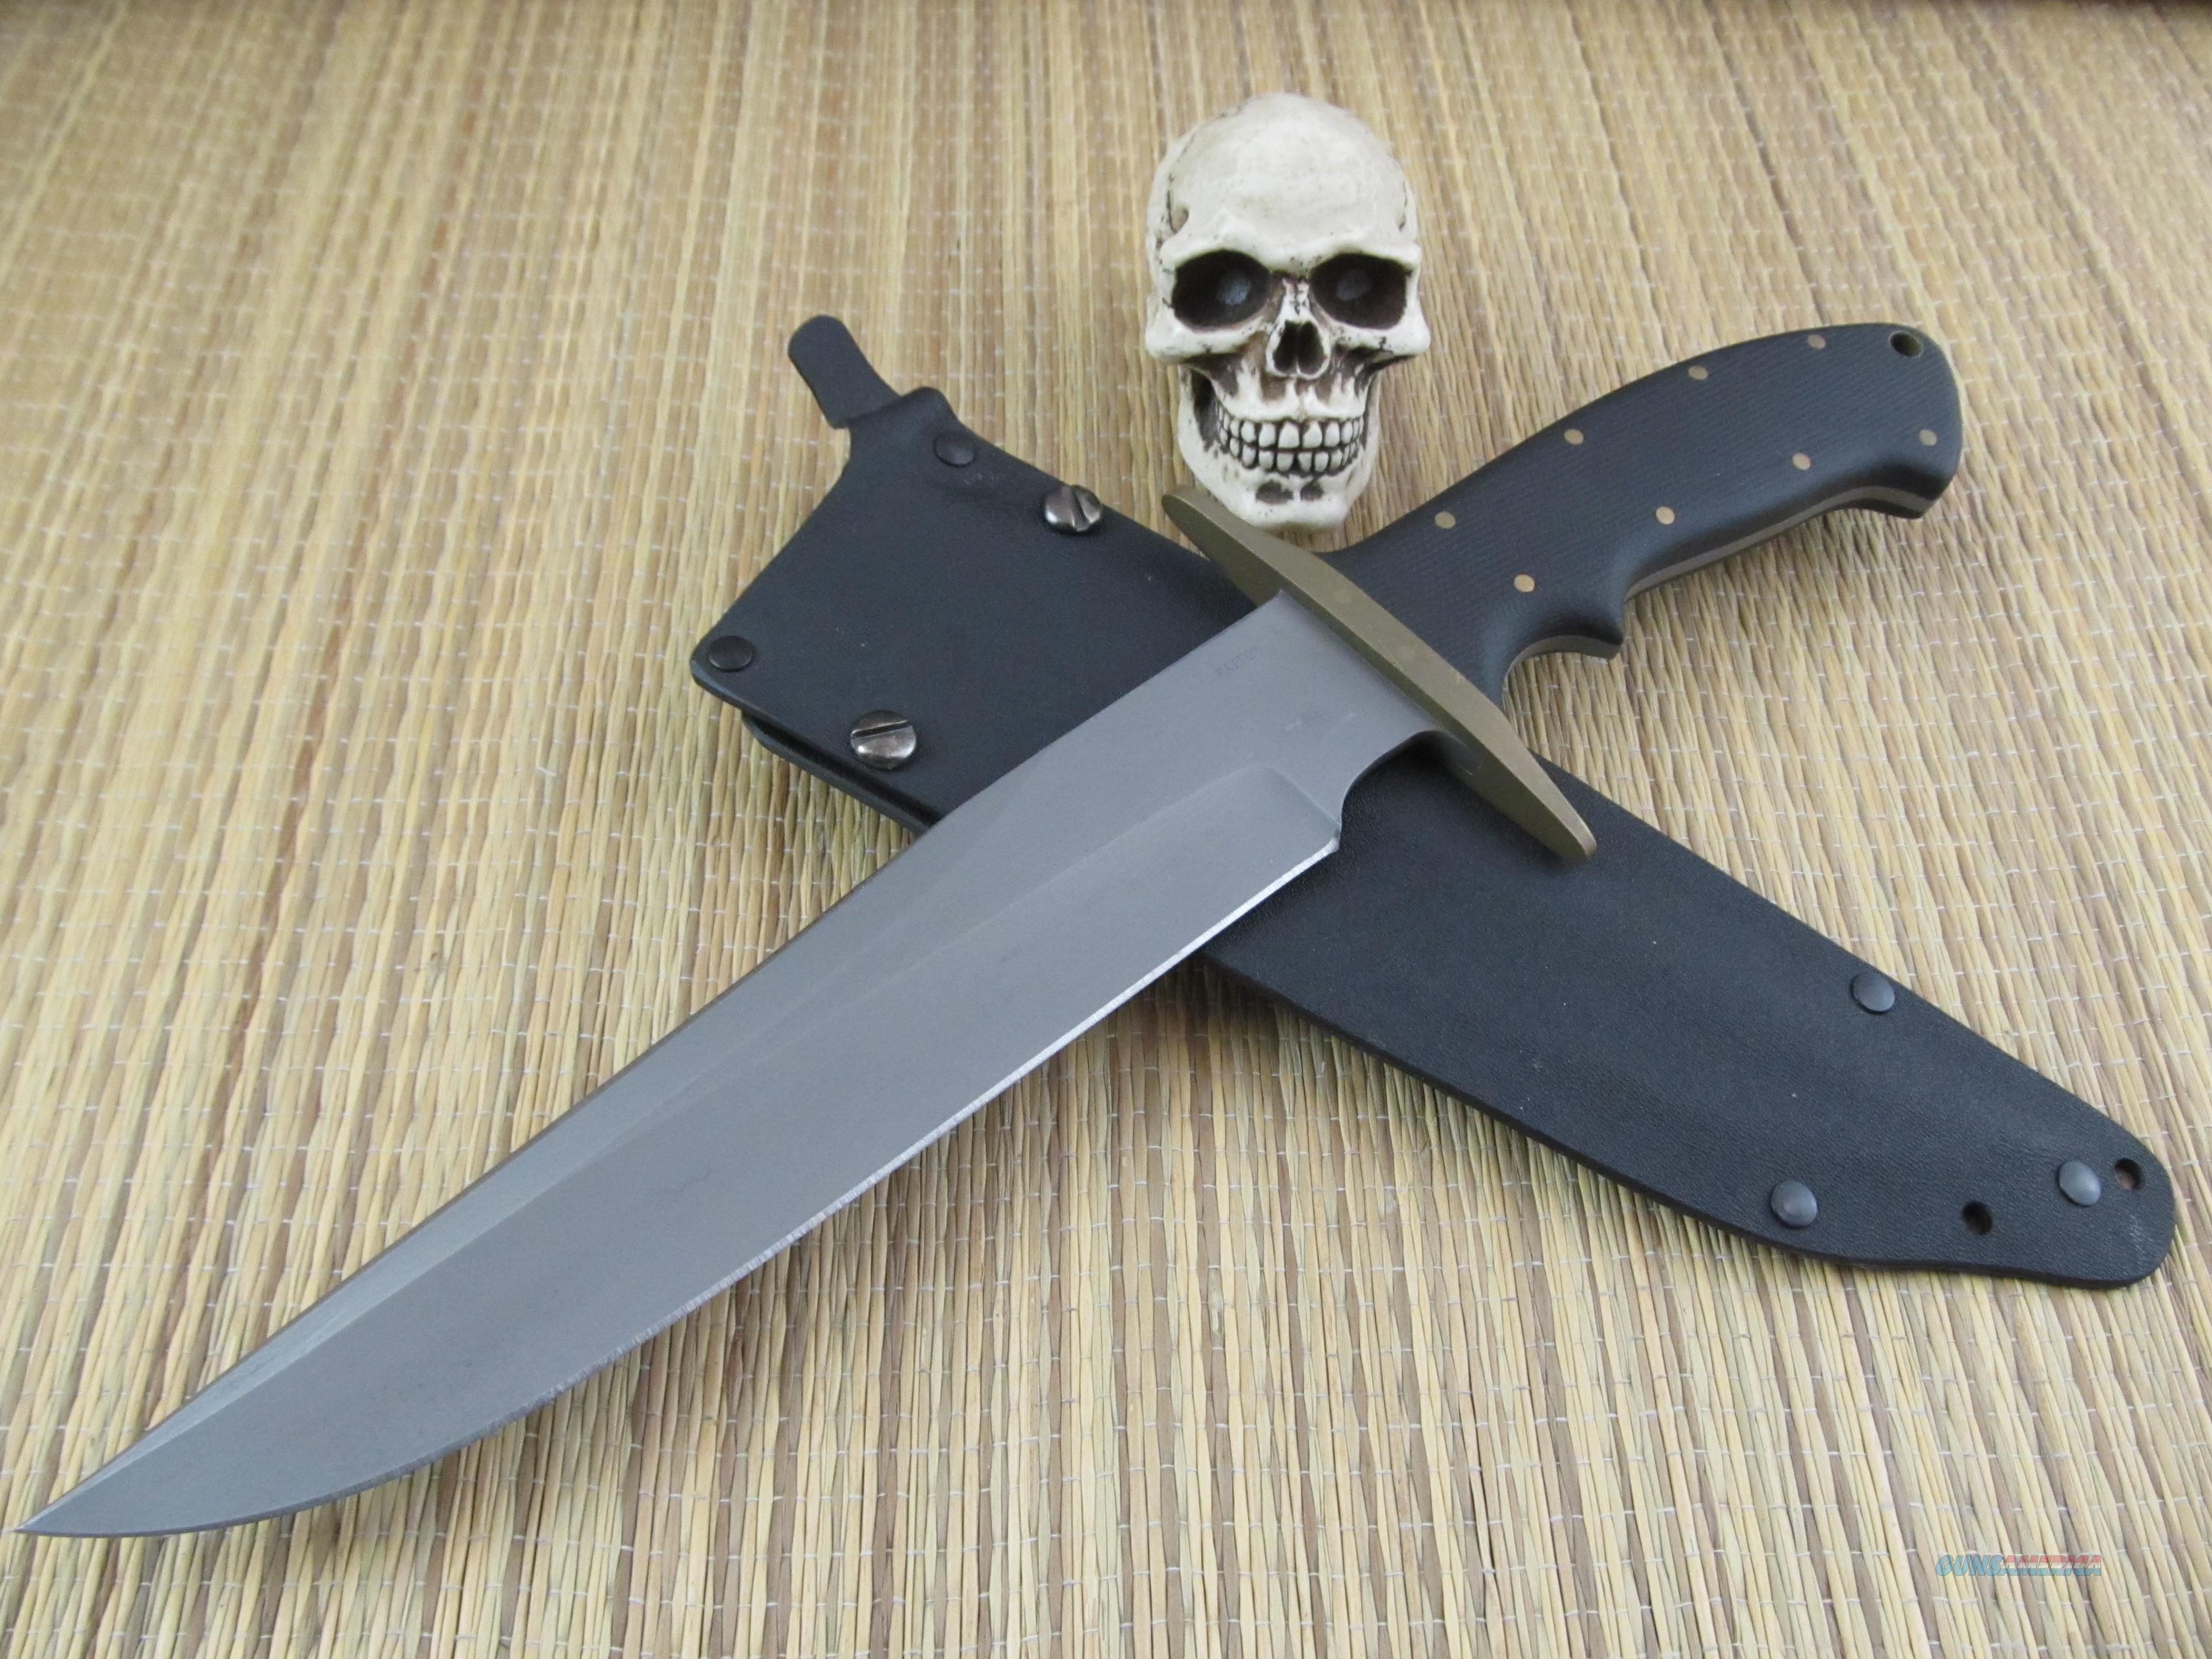 Rob Patton Grande Bowie / Fighter Hand Forged 1080 Steel  Non-Guns > Knives/Swords > Knives > Fixed Blade > Hand Made